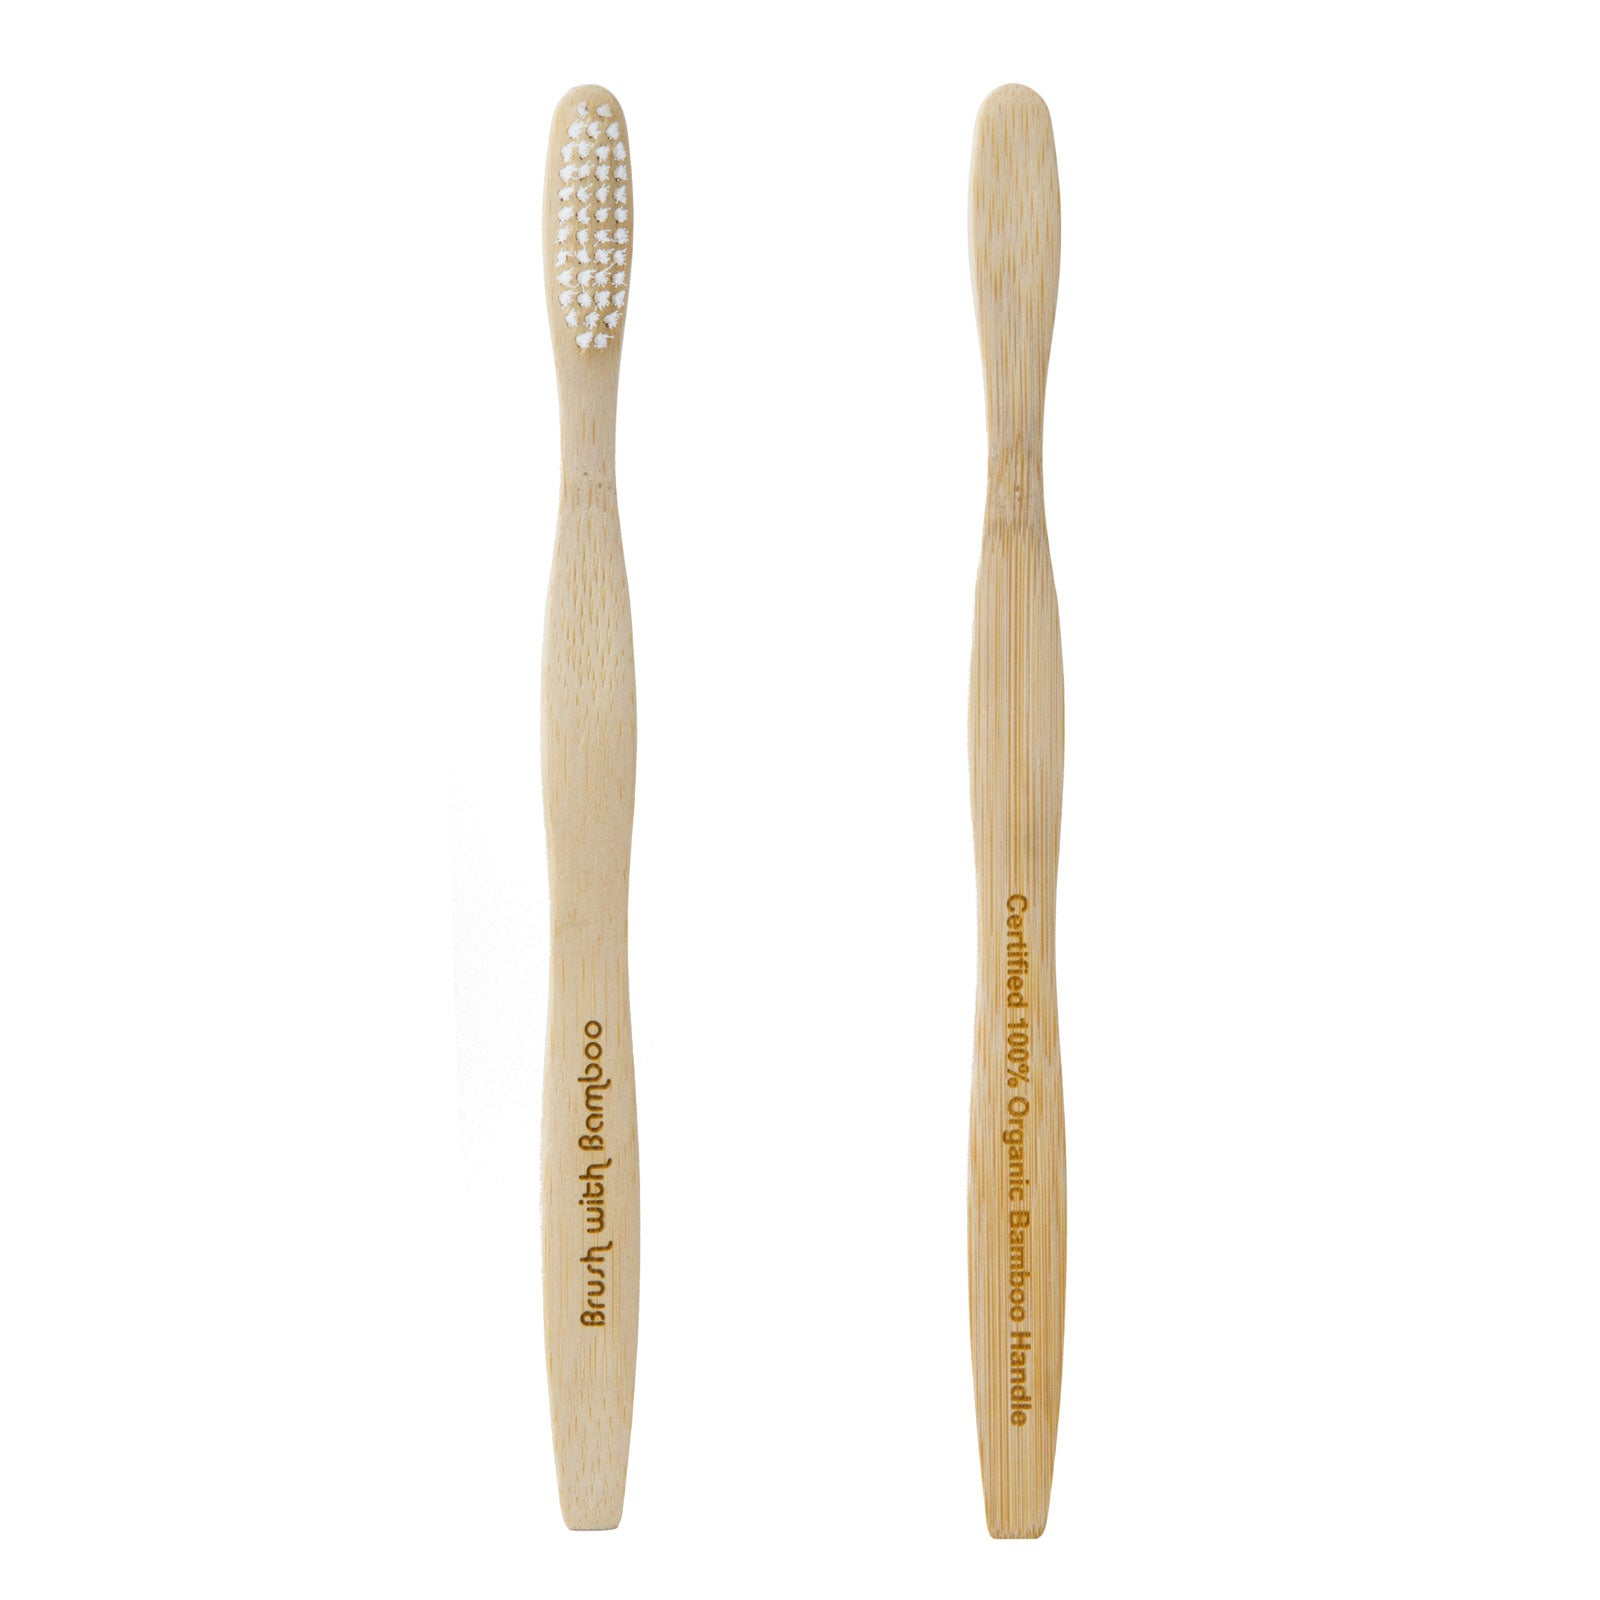 Bamboo Toothbrush - Salix Intimates